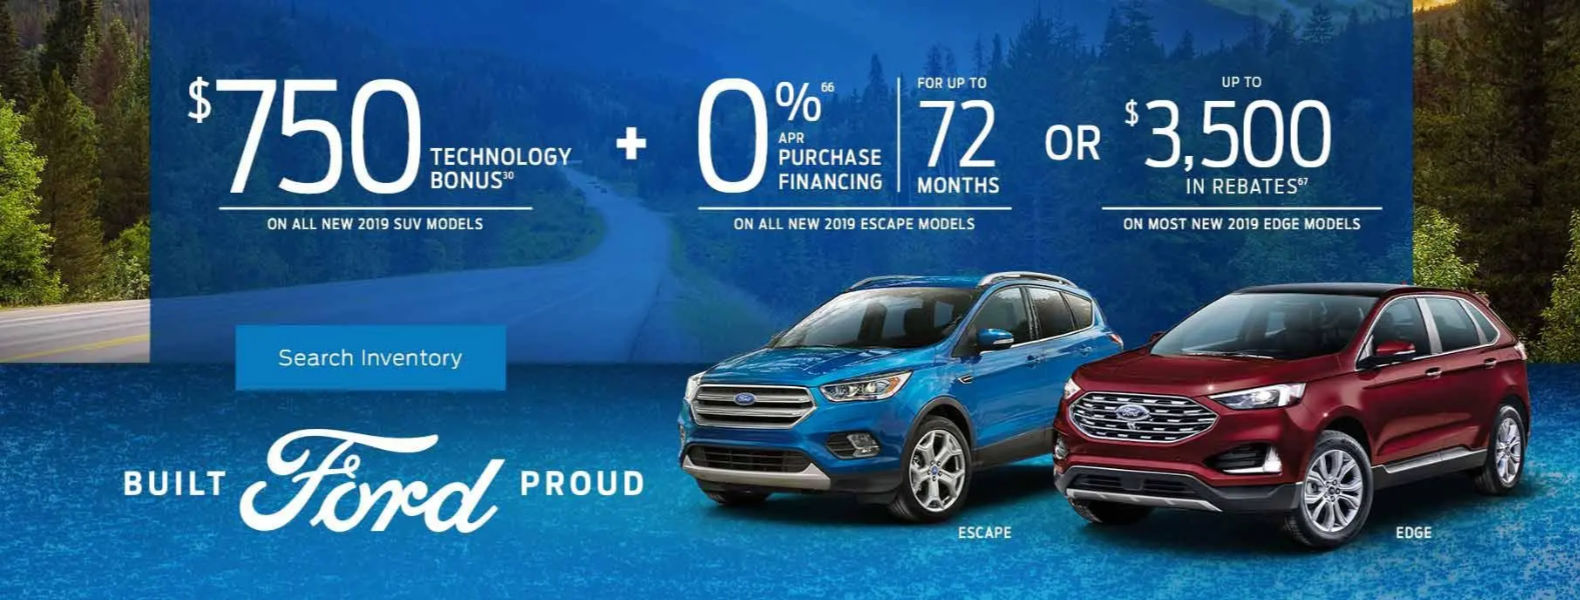 Ford SUV special Smiths Falls